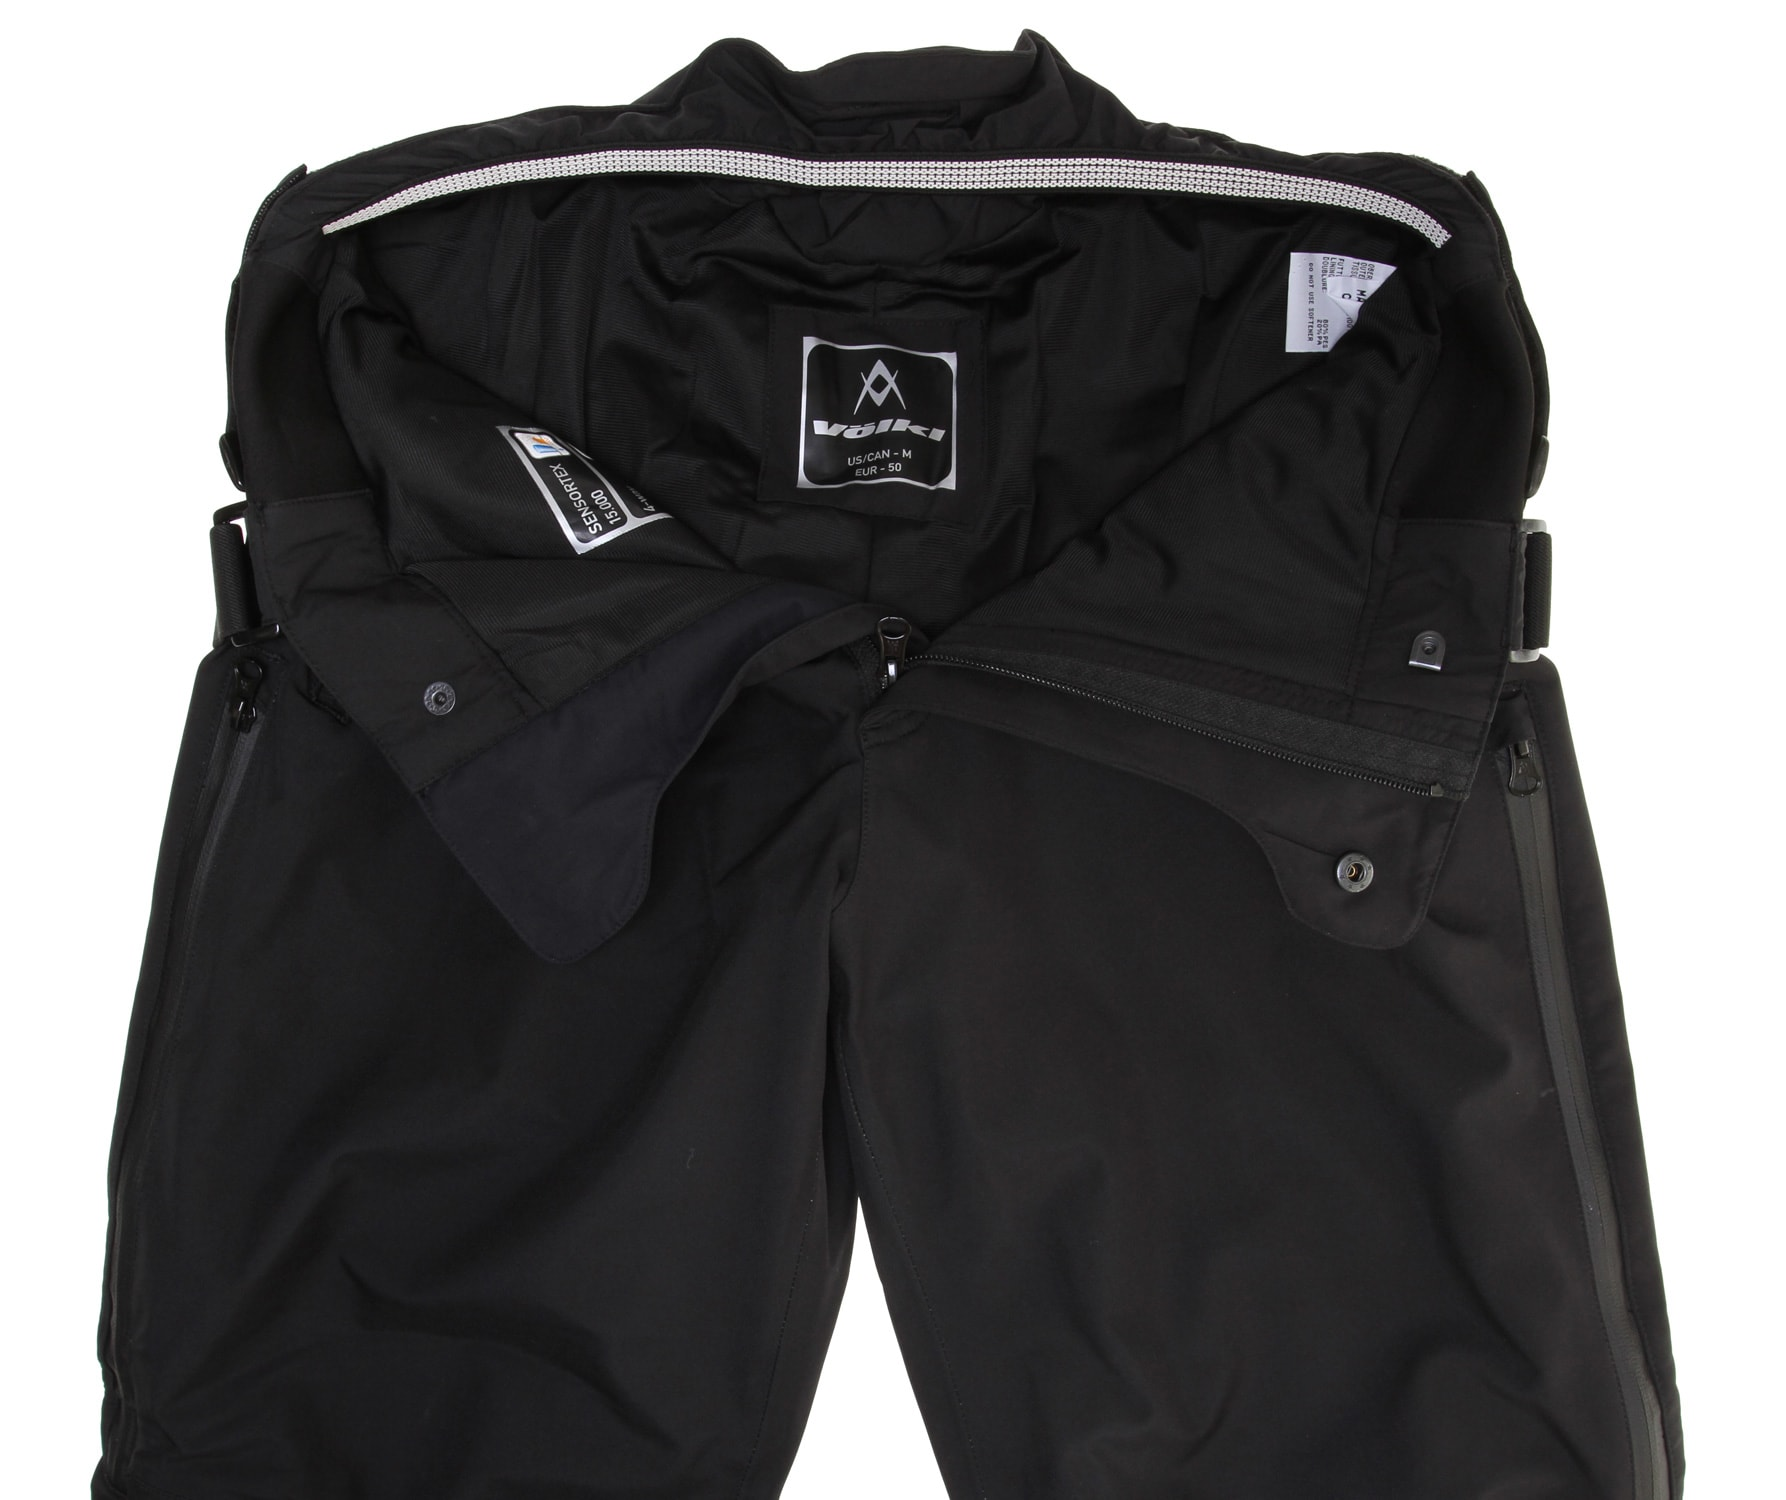 d998509298 Volkl Pro Team Pro Fit Ski Pants - thumbnail 3